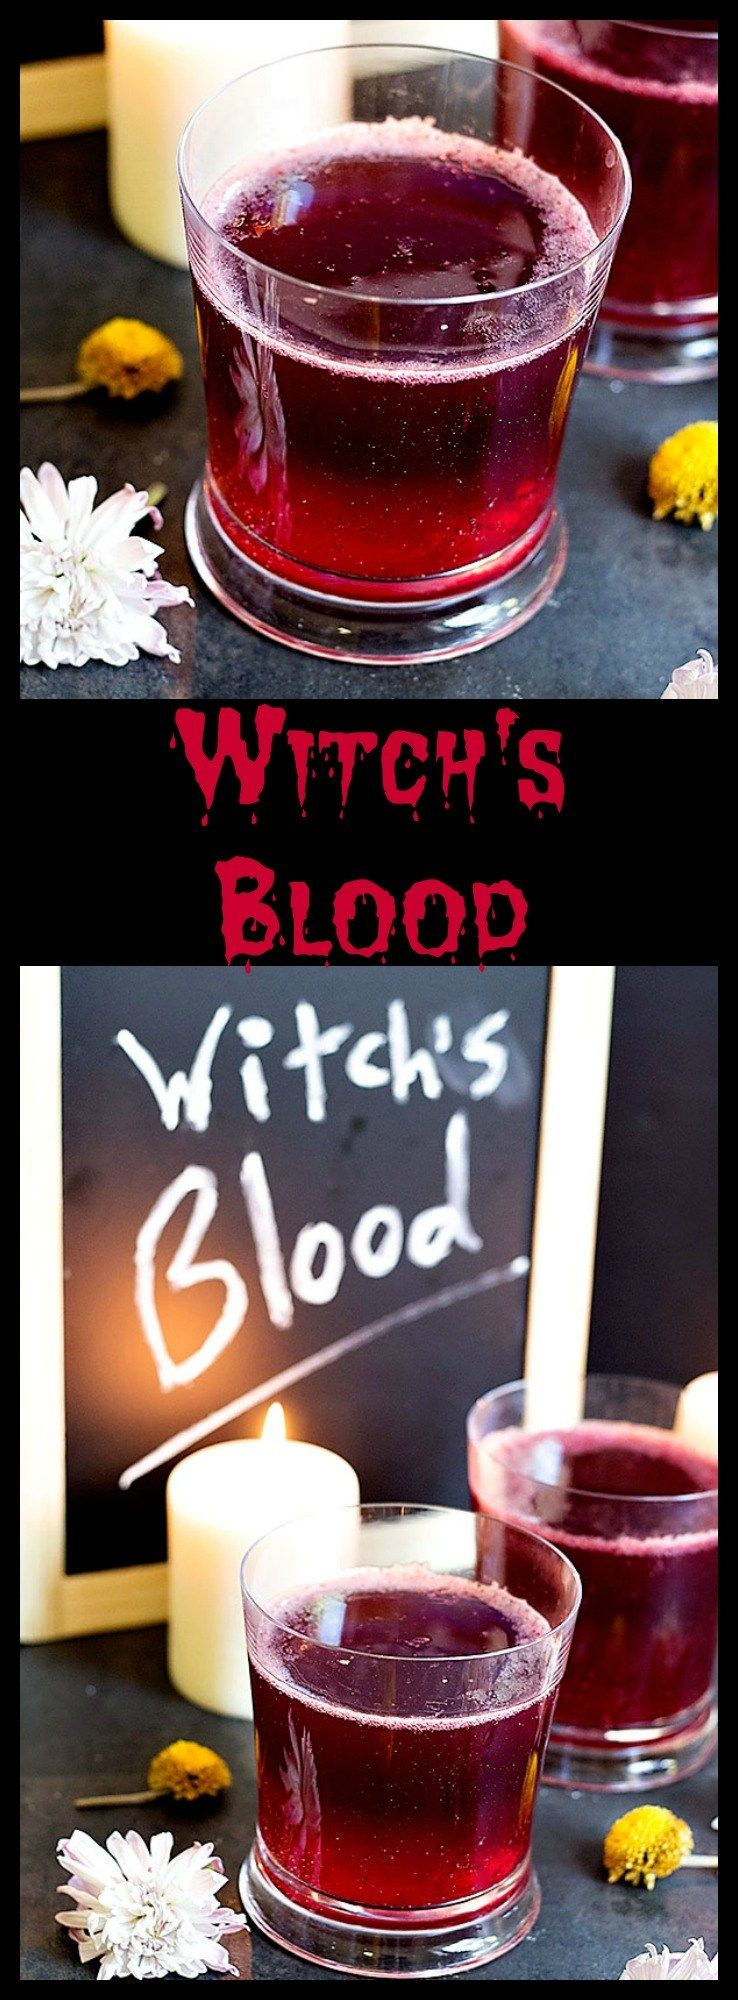 As Scary As The Name Might Be Witch S Blood Is Actually A Fun And Easy Drink Made With Only 3 Ingredient Halloween Drinks Punch Drinks Spooky Halloween Drinks